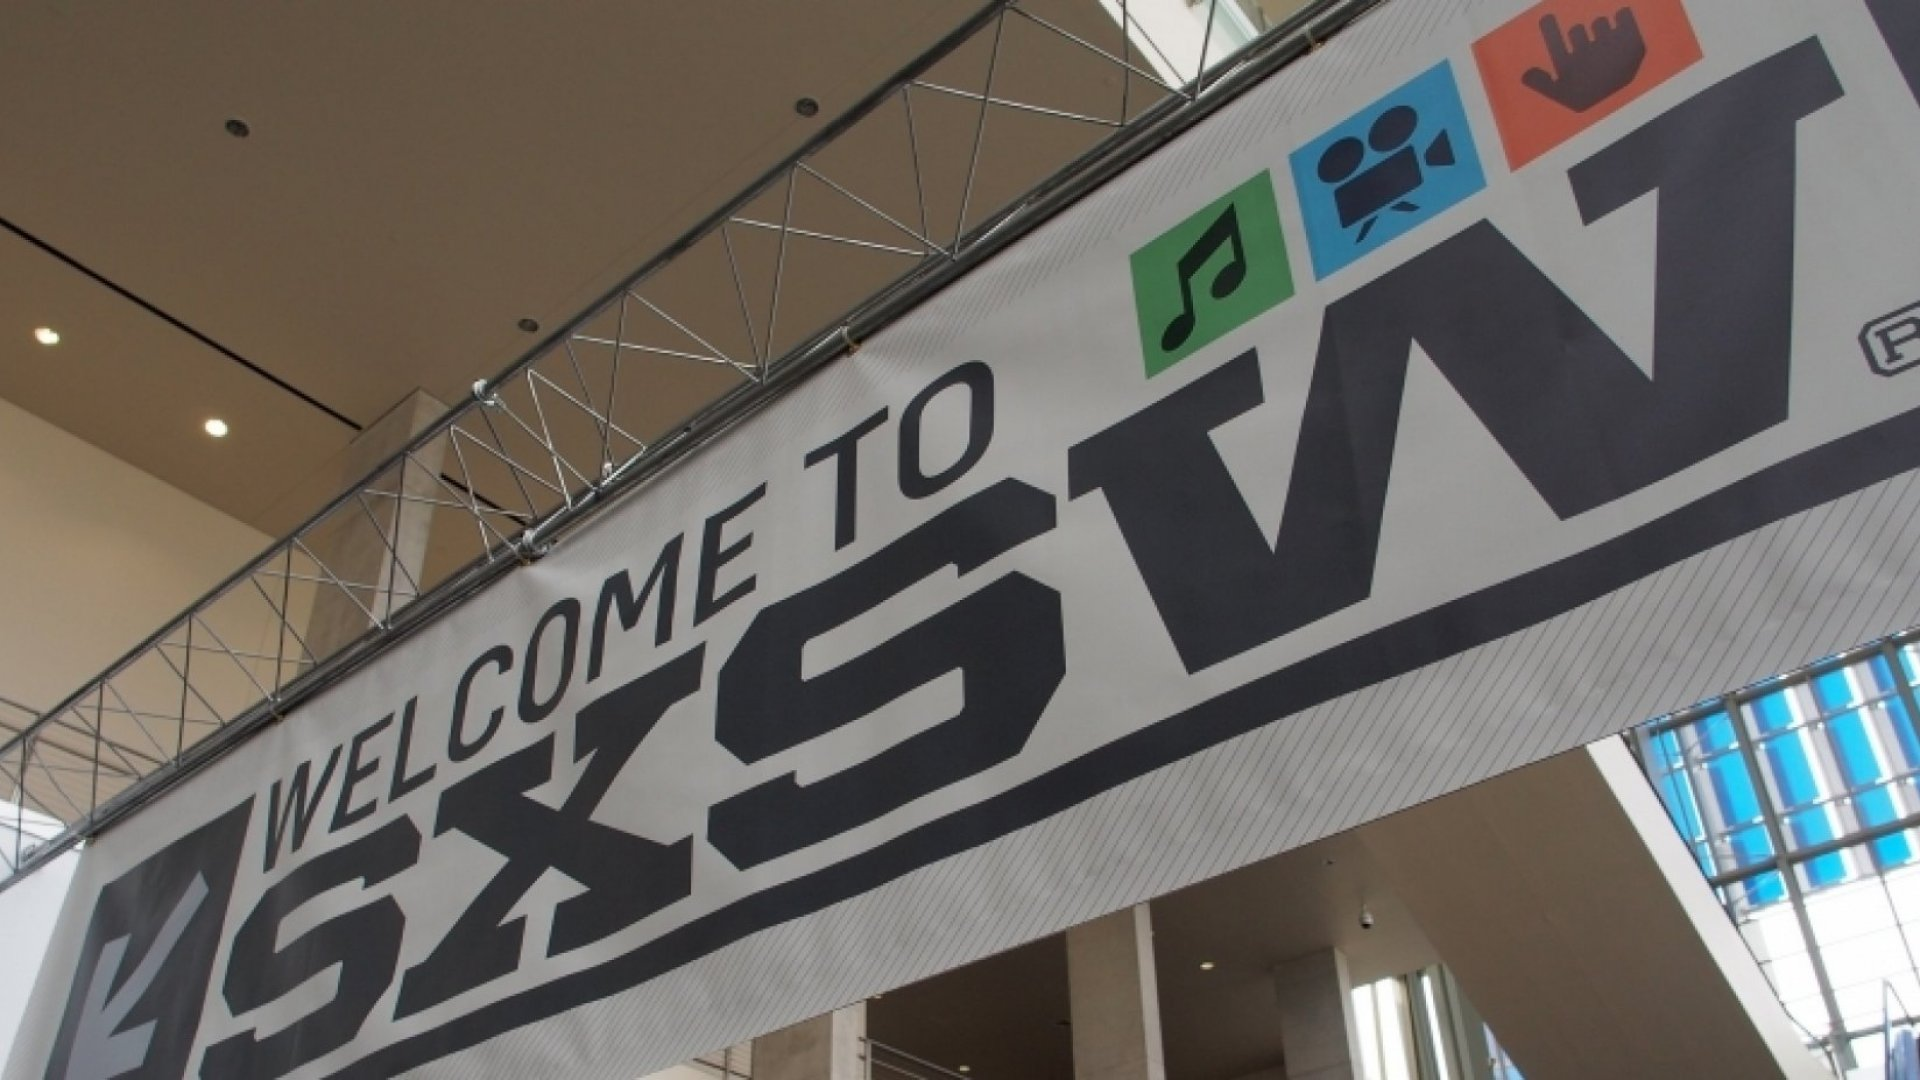 11 Events to Add to Your SXSW Interactive Itinerary